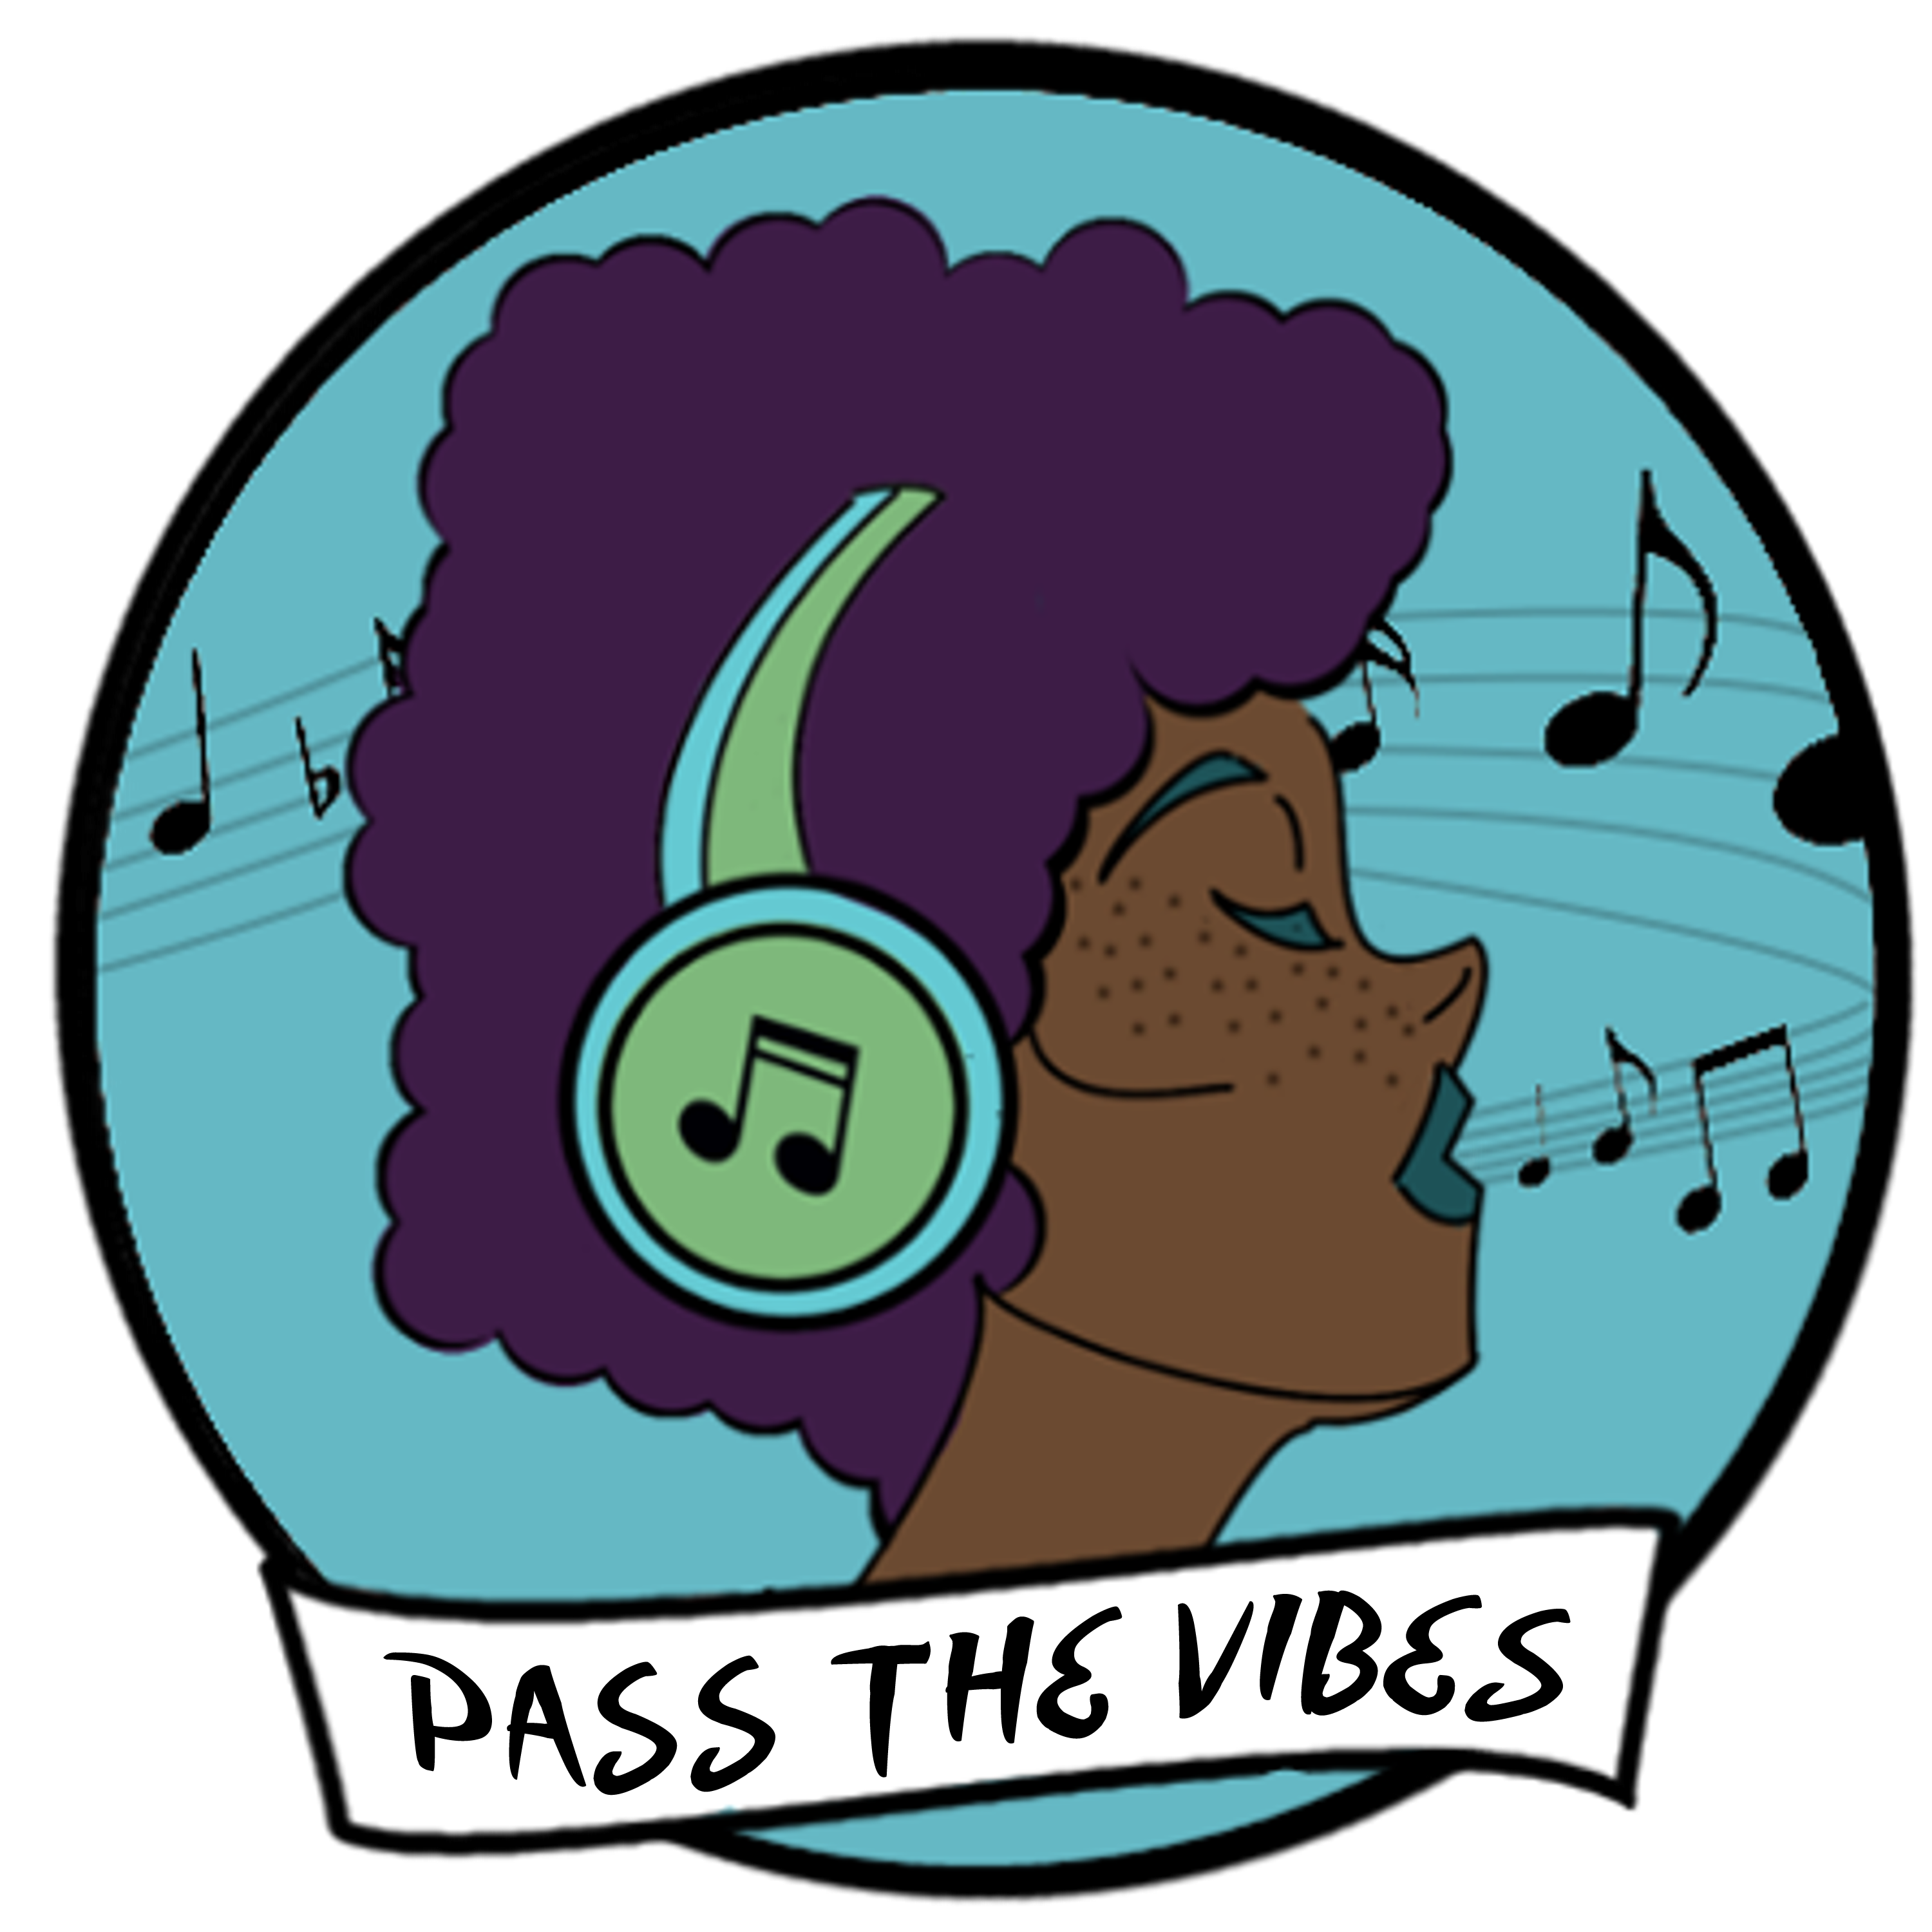 Pass the Vibes logo